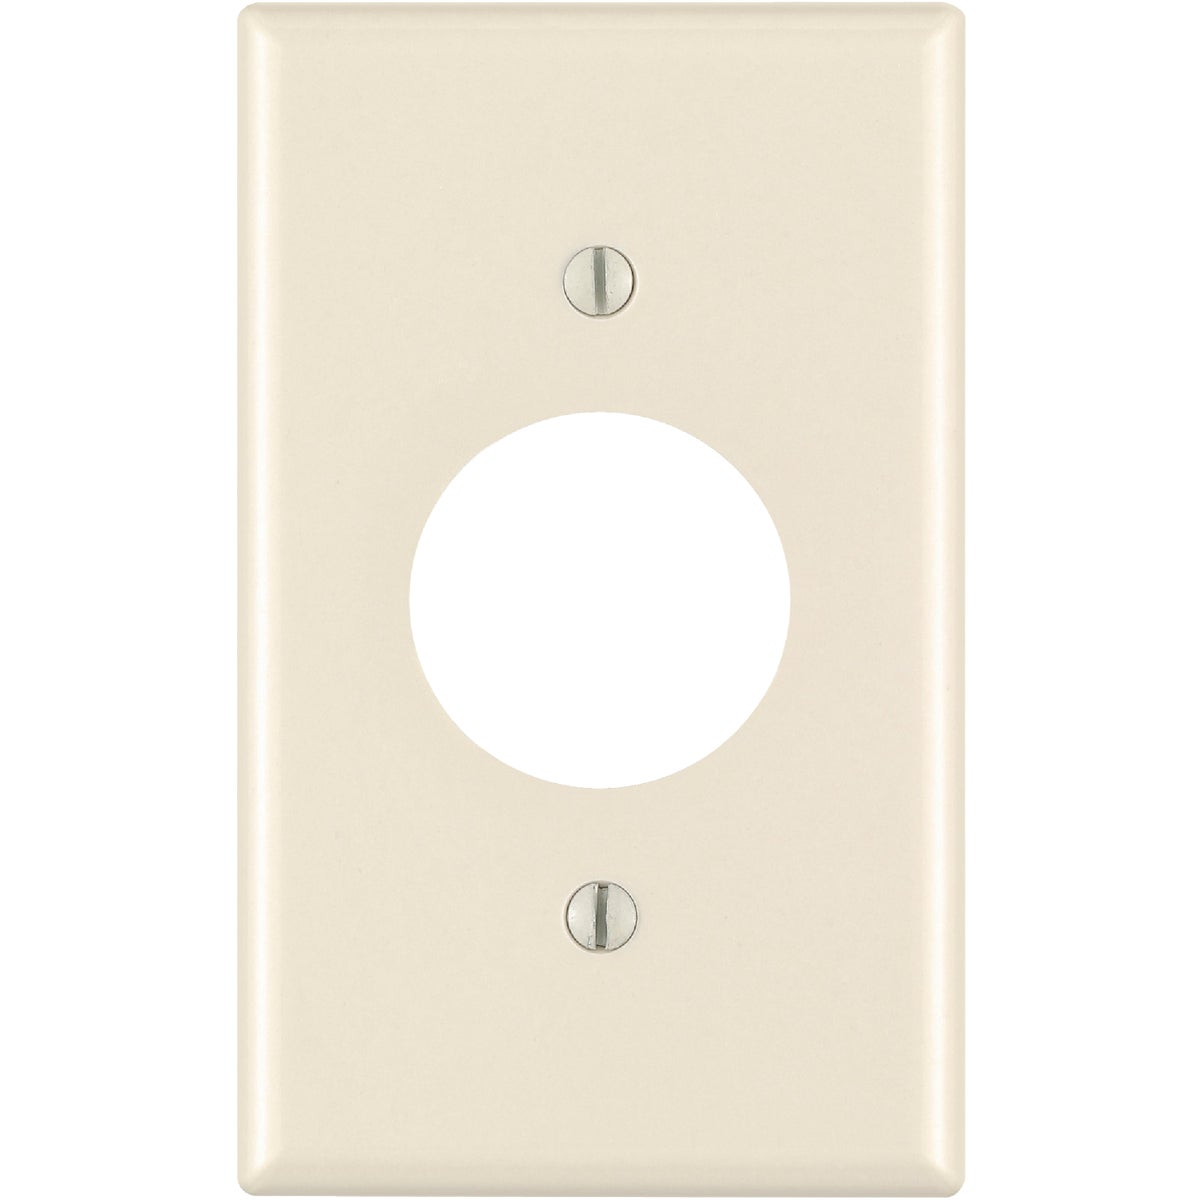 LT ALM SGL OUT WALLPLATE - 000-78004-000 by Leviton Mfg Co